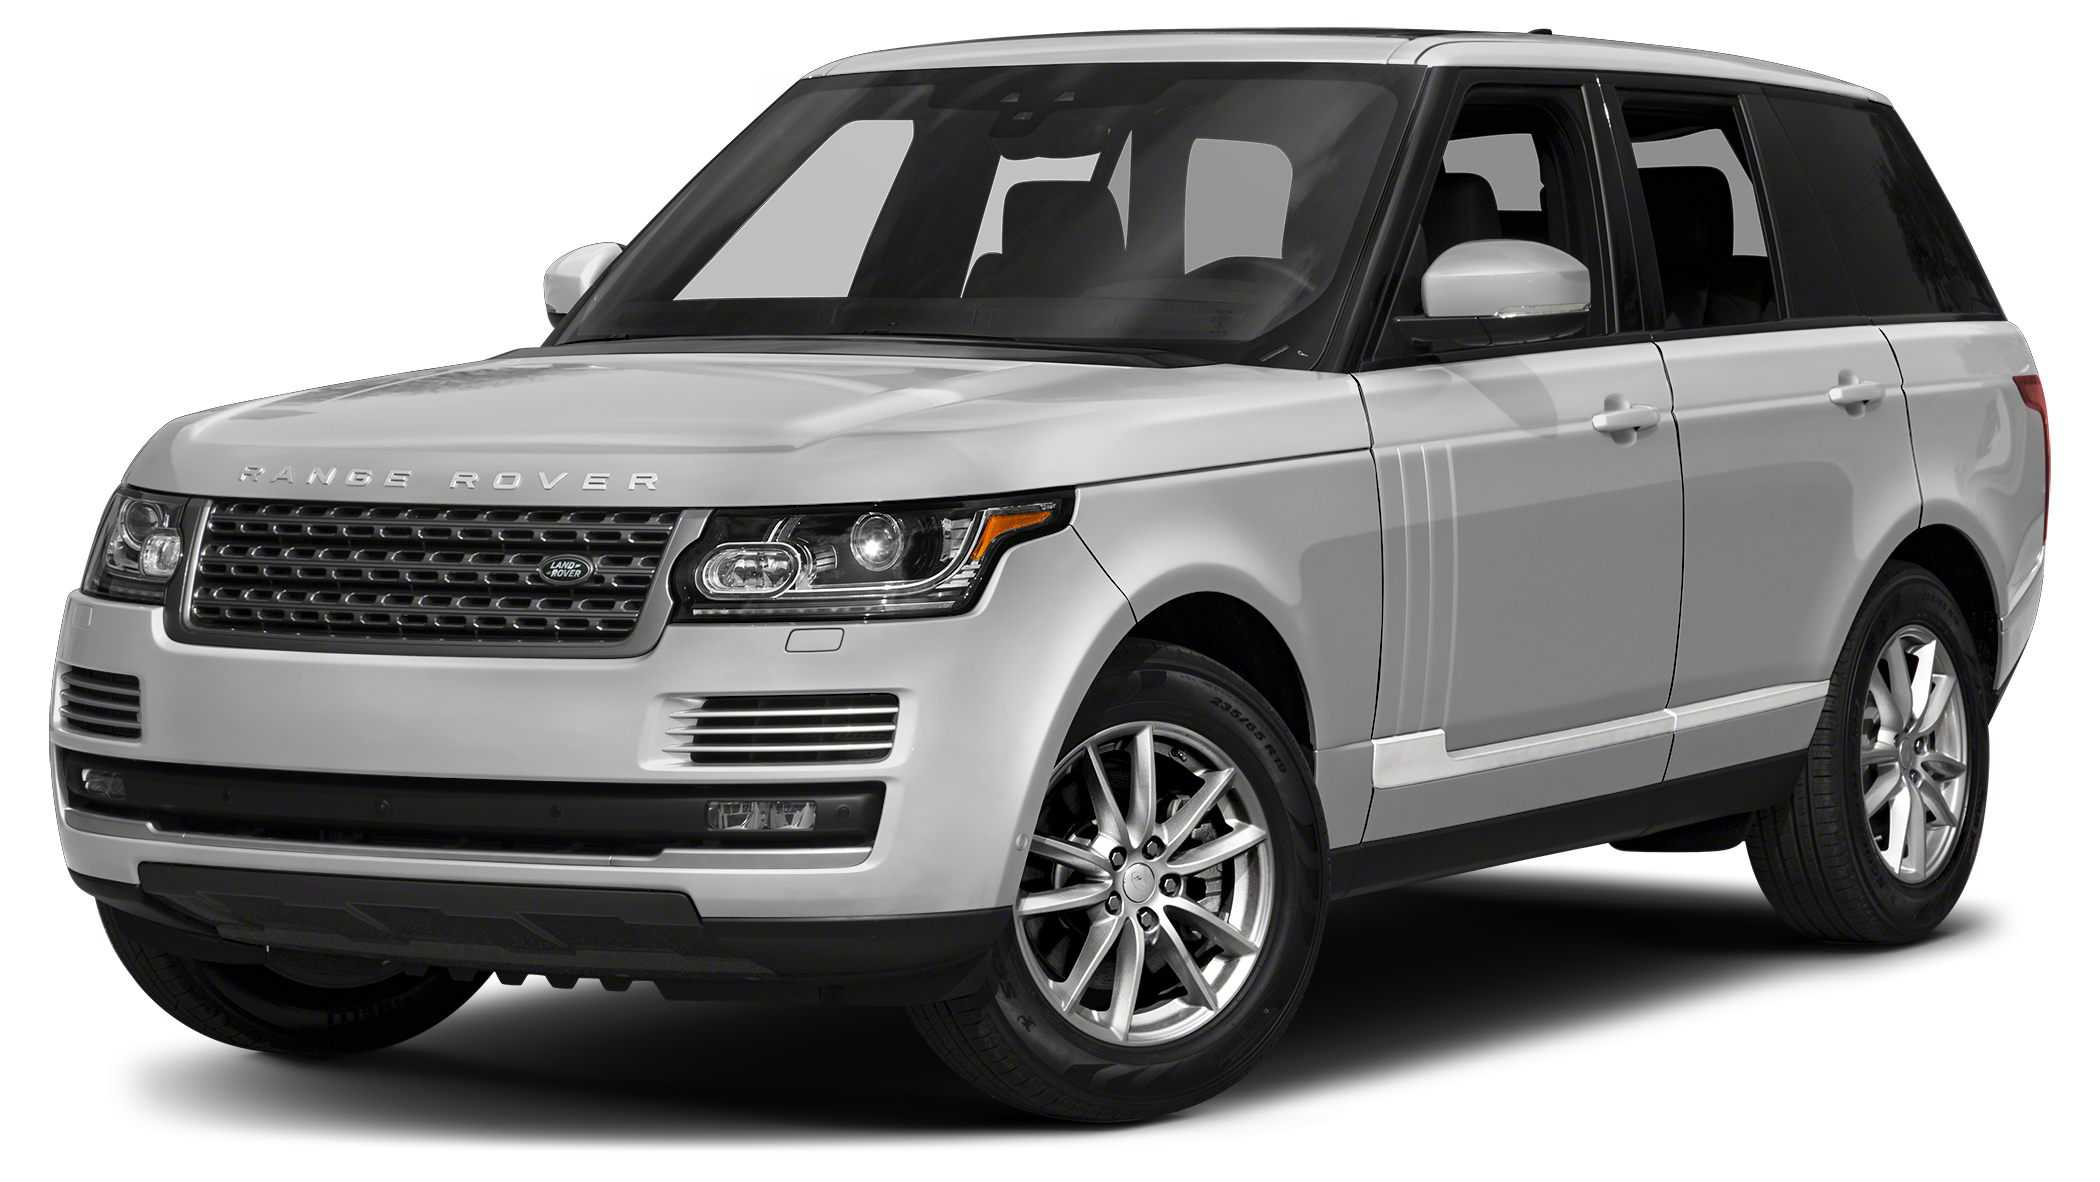 2017 LAND ROVER RANGE ROVER for Sale in Bedford NH